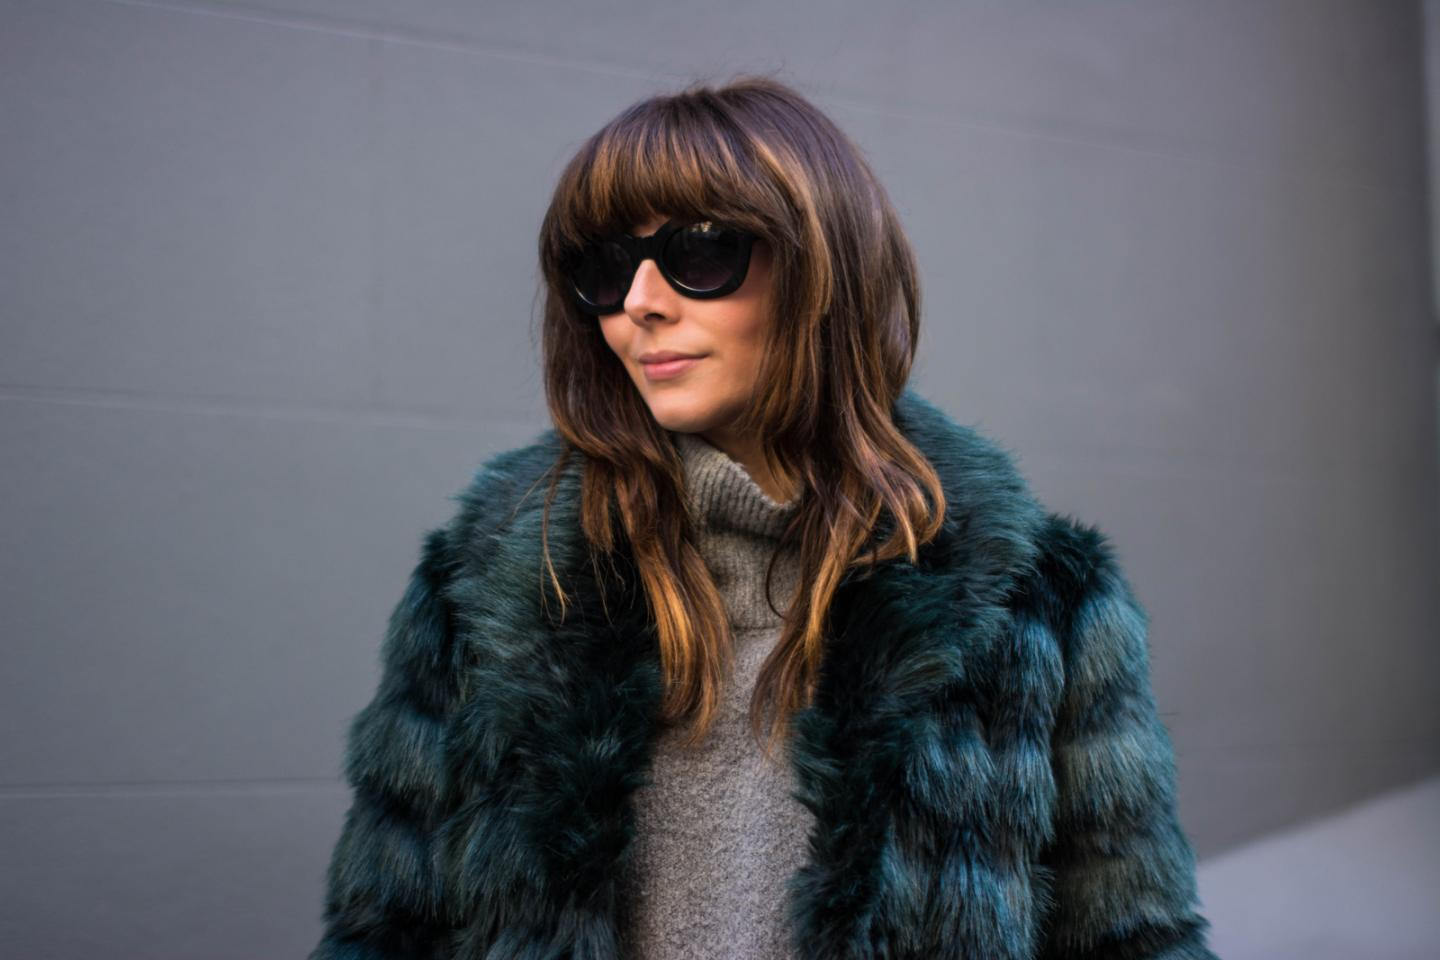 EJSTYLE - Fashion Union teal green faux fur coat, Grey Zara high neck jumper, winter outfit, influential fashion bloggers, London street style